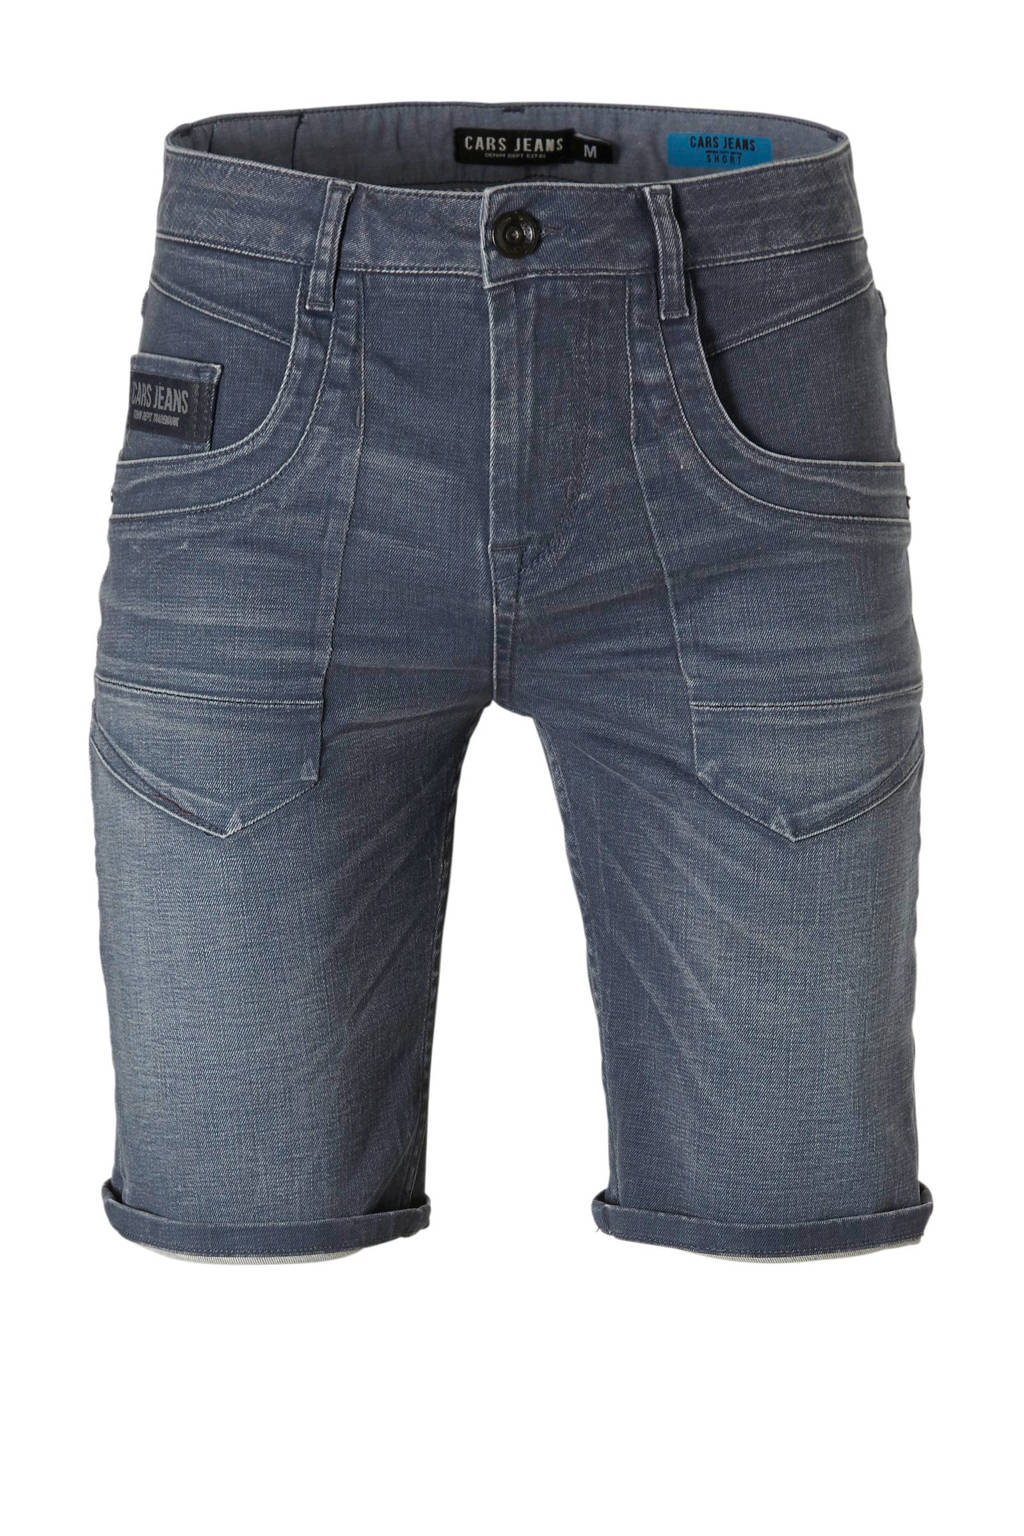 Cars regular fit jeans short, Grey Blue